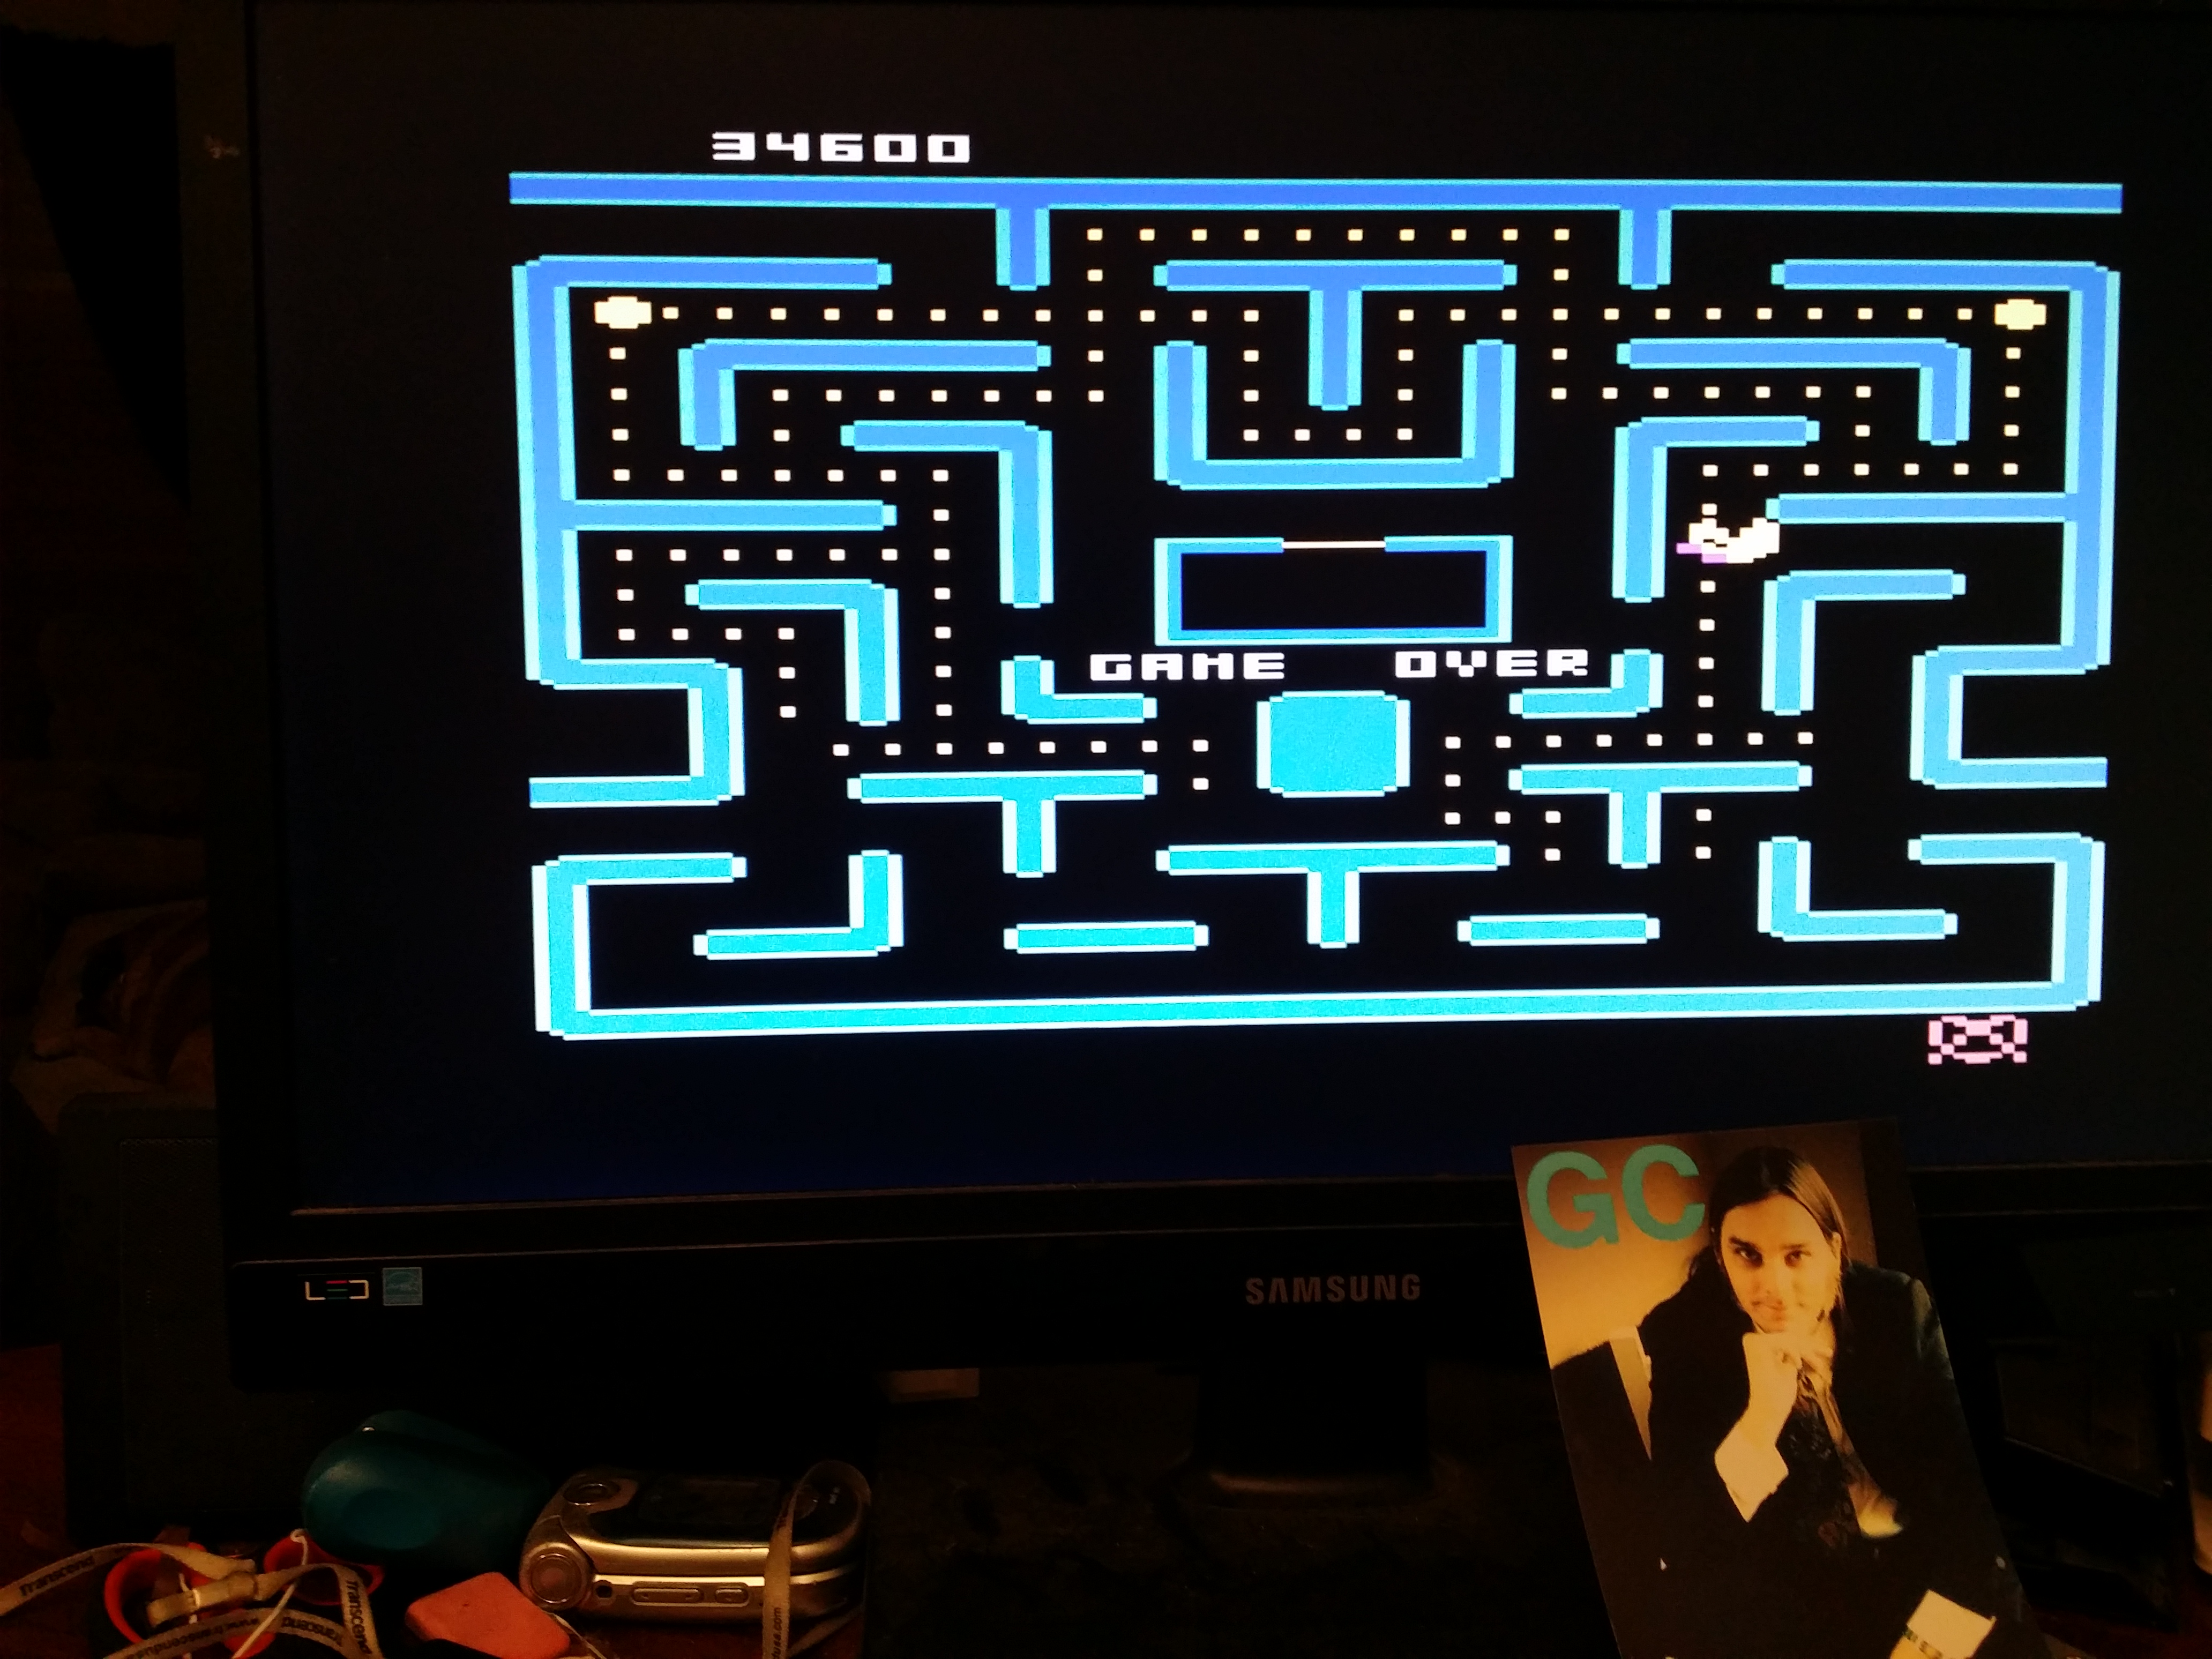 glenncase: Ms. Pac-Man: Cherries Start (Atari 5200 Emulated) 34,600 points on 2014-11-18 01:17:48